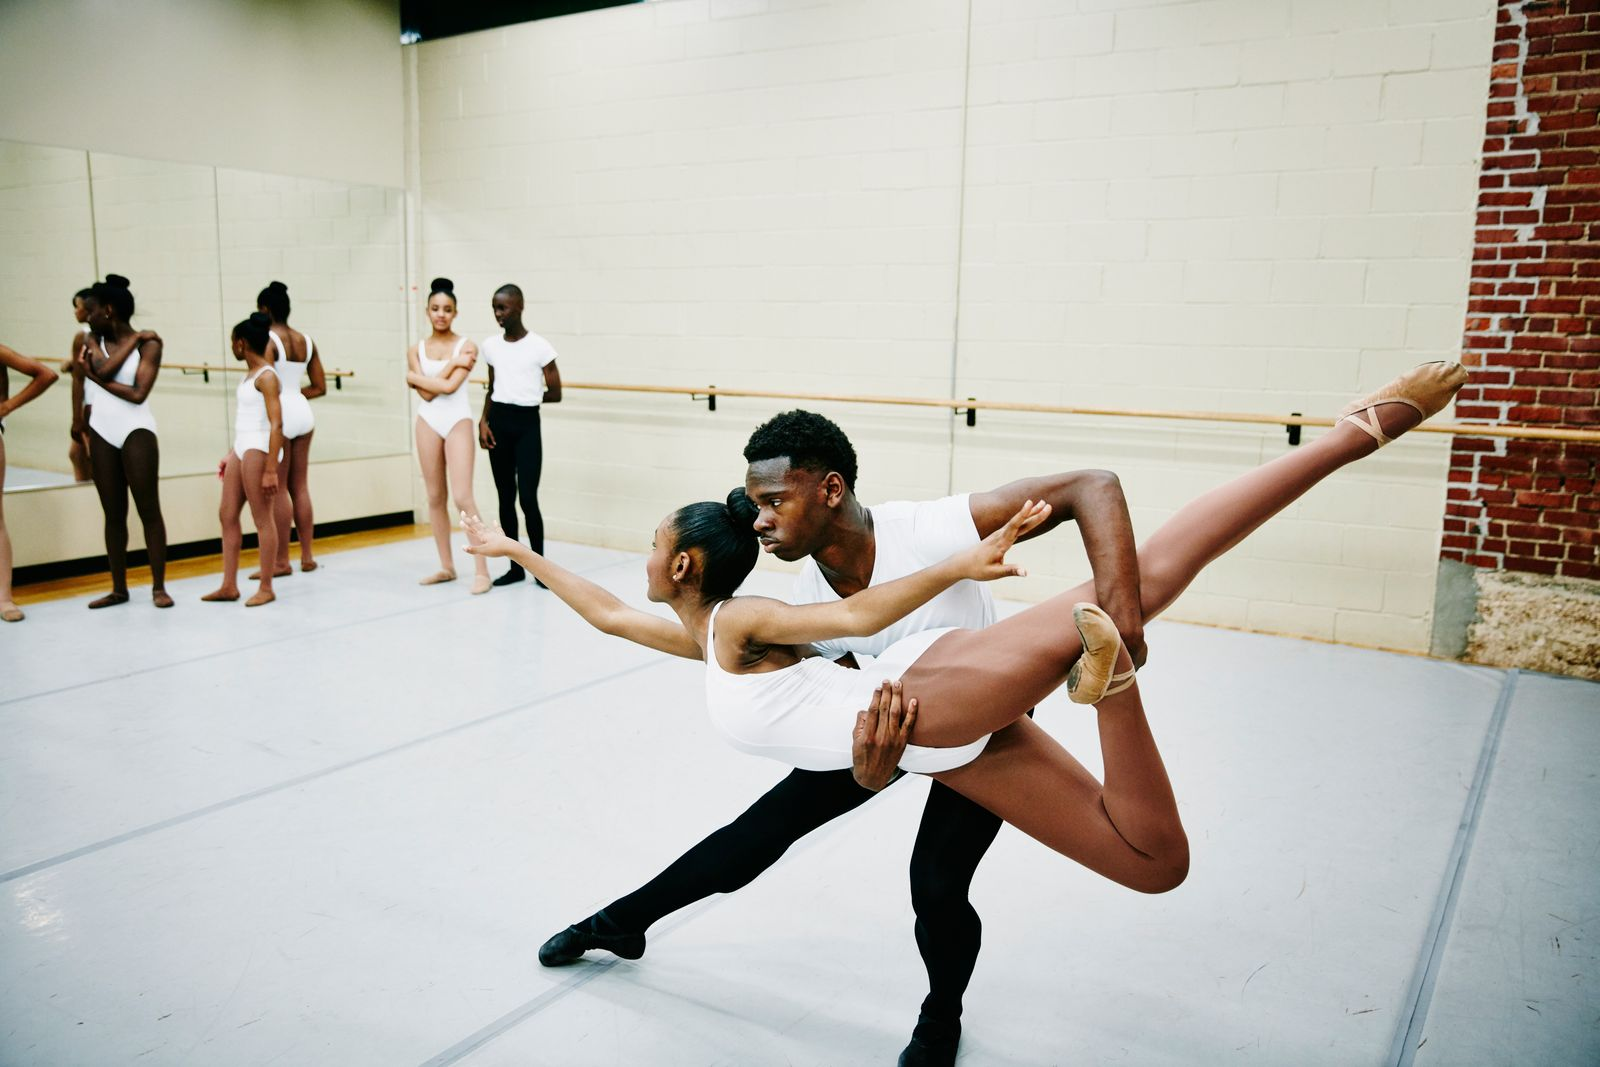 Ballet dancer lifting partner during rehearsal